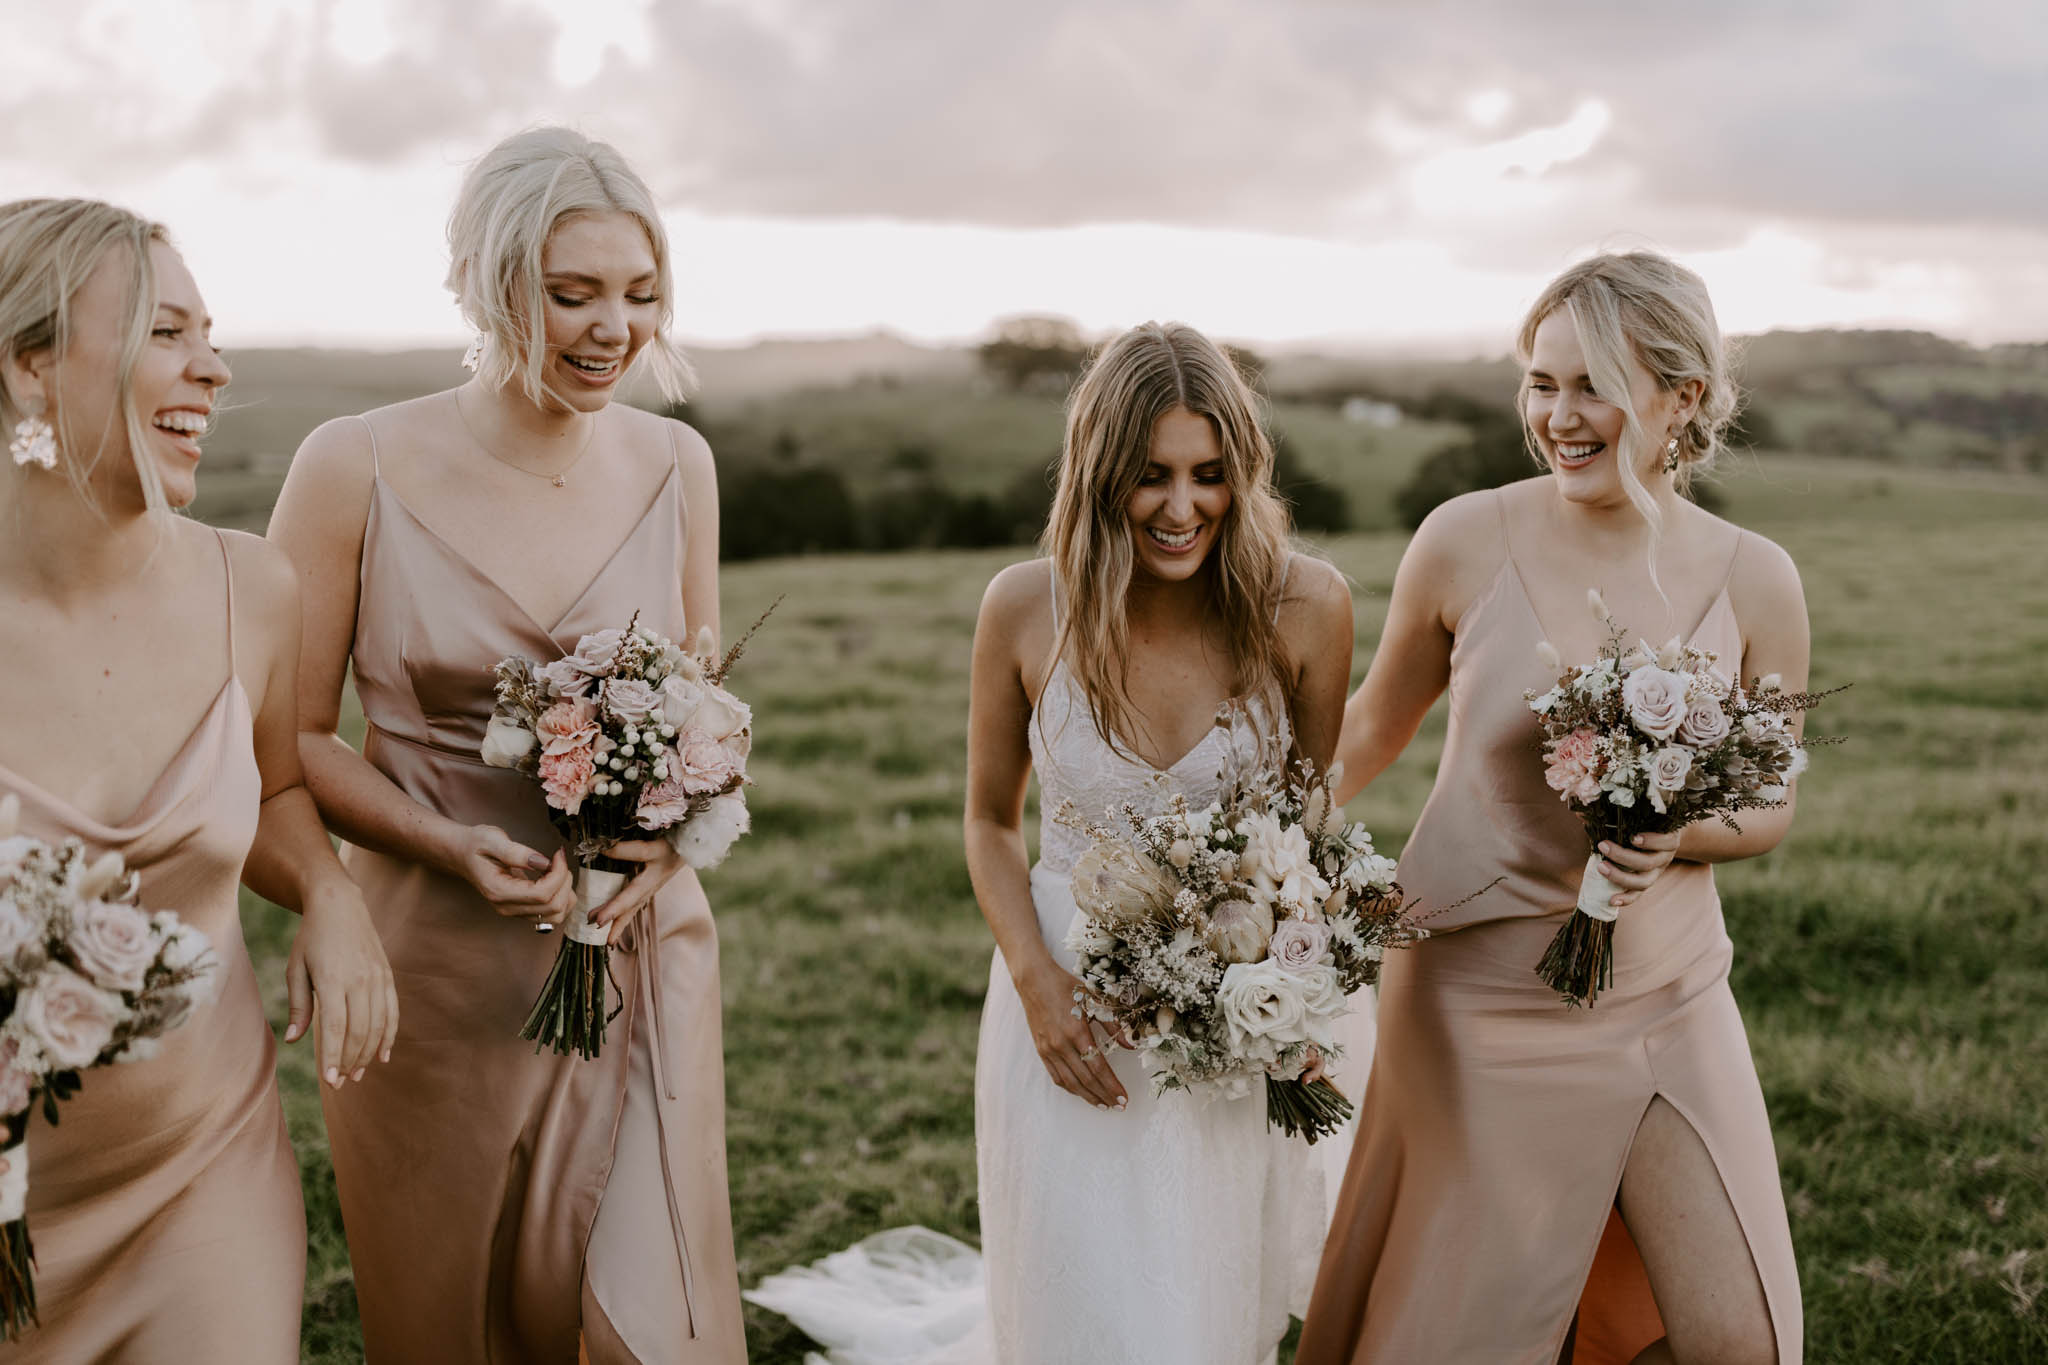 Bridle party smiling in hinterland / Wedding photography